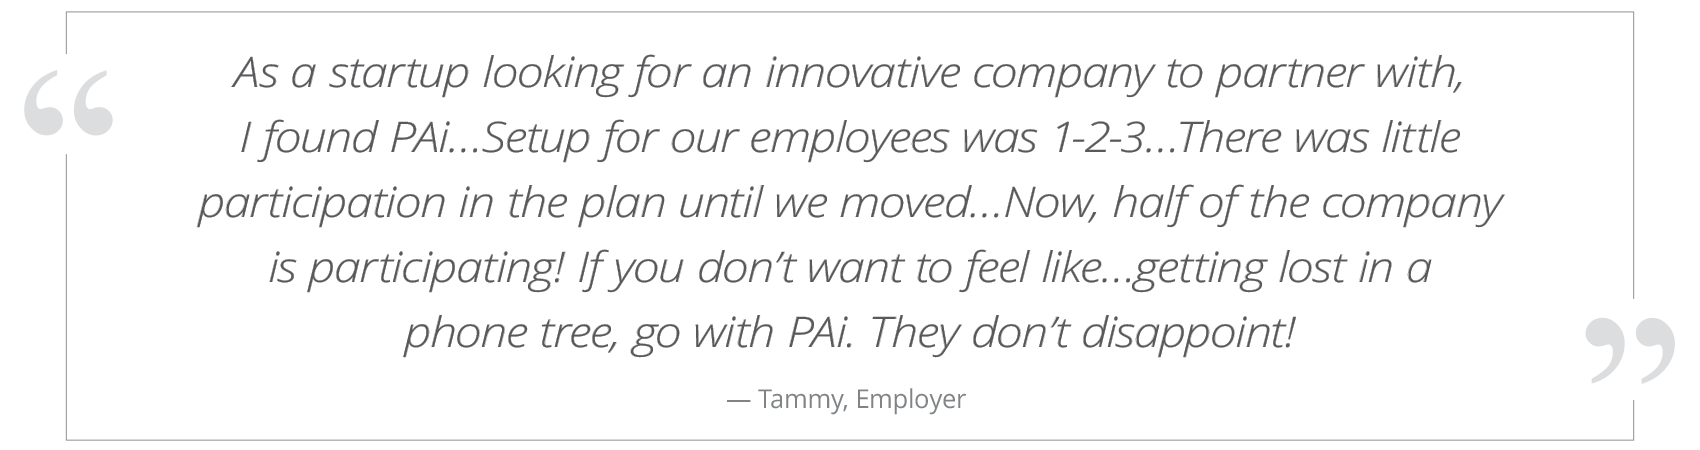 pai-website-testimonial-Tammy-Employer.png